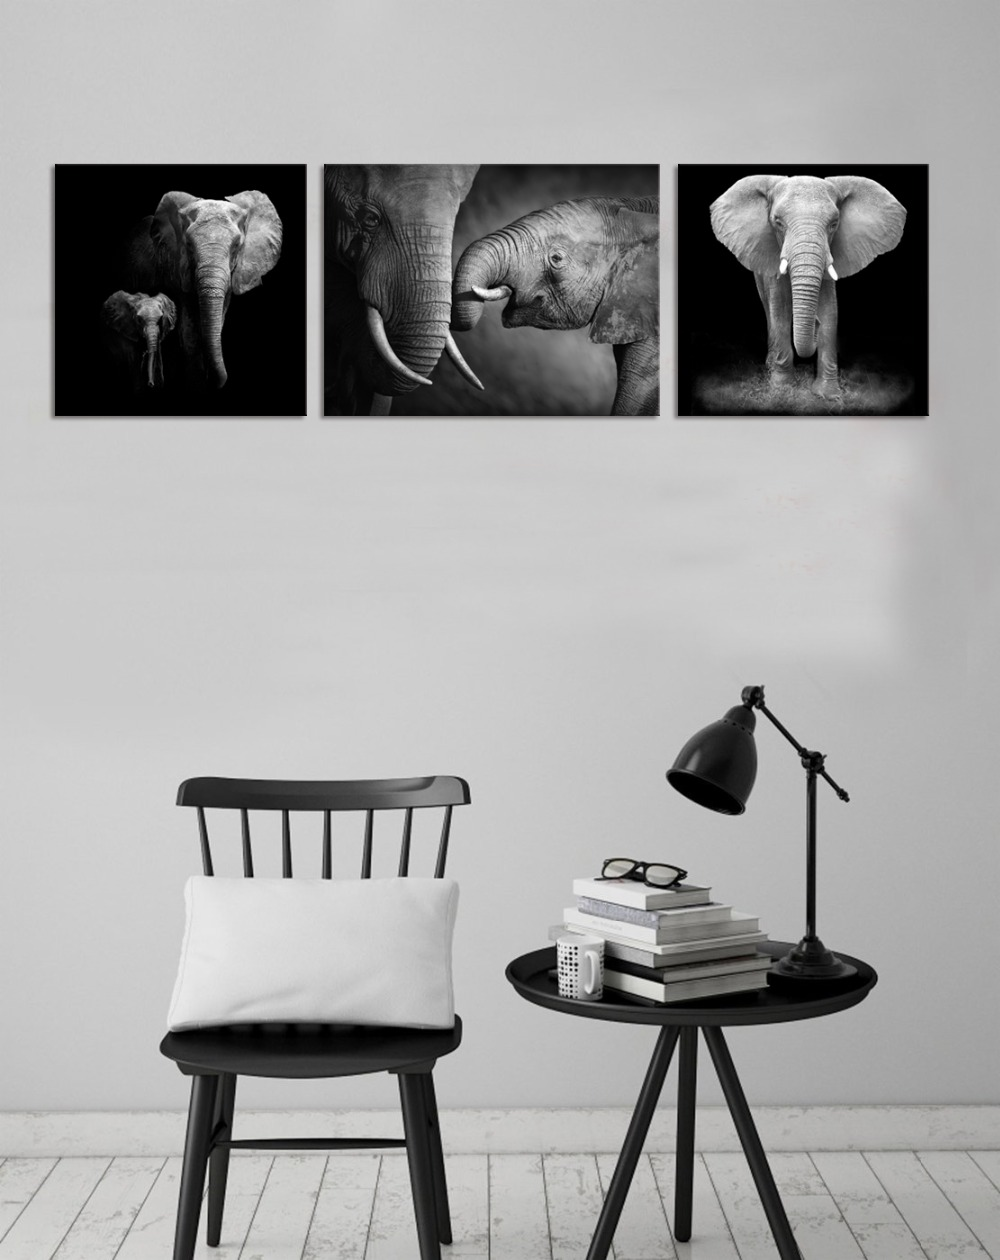 Us 17 08 5 offblack and white canvas wall art decor animal canvas prints elephant family poster canvas artwork for living room in painting